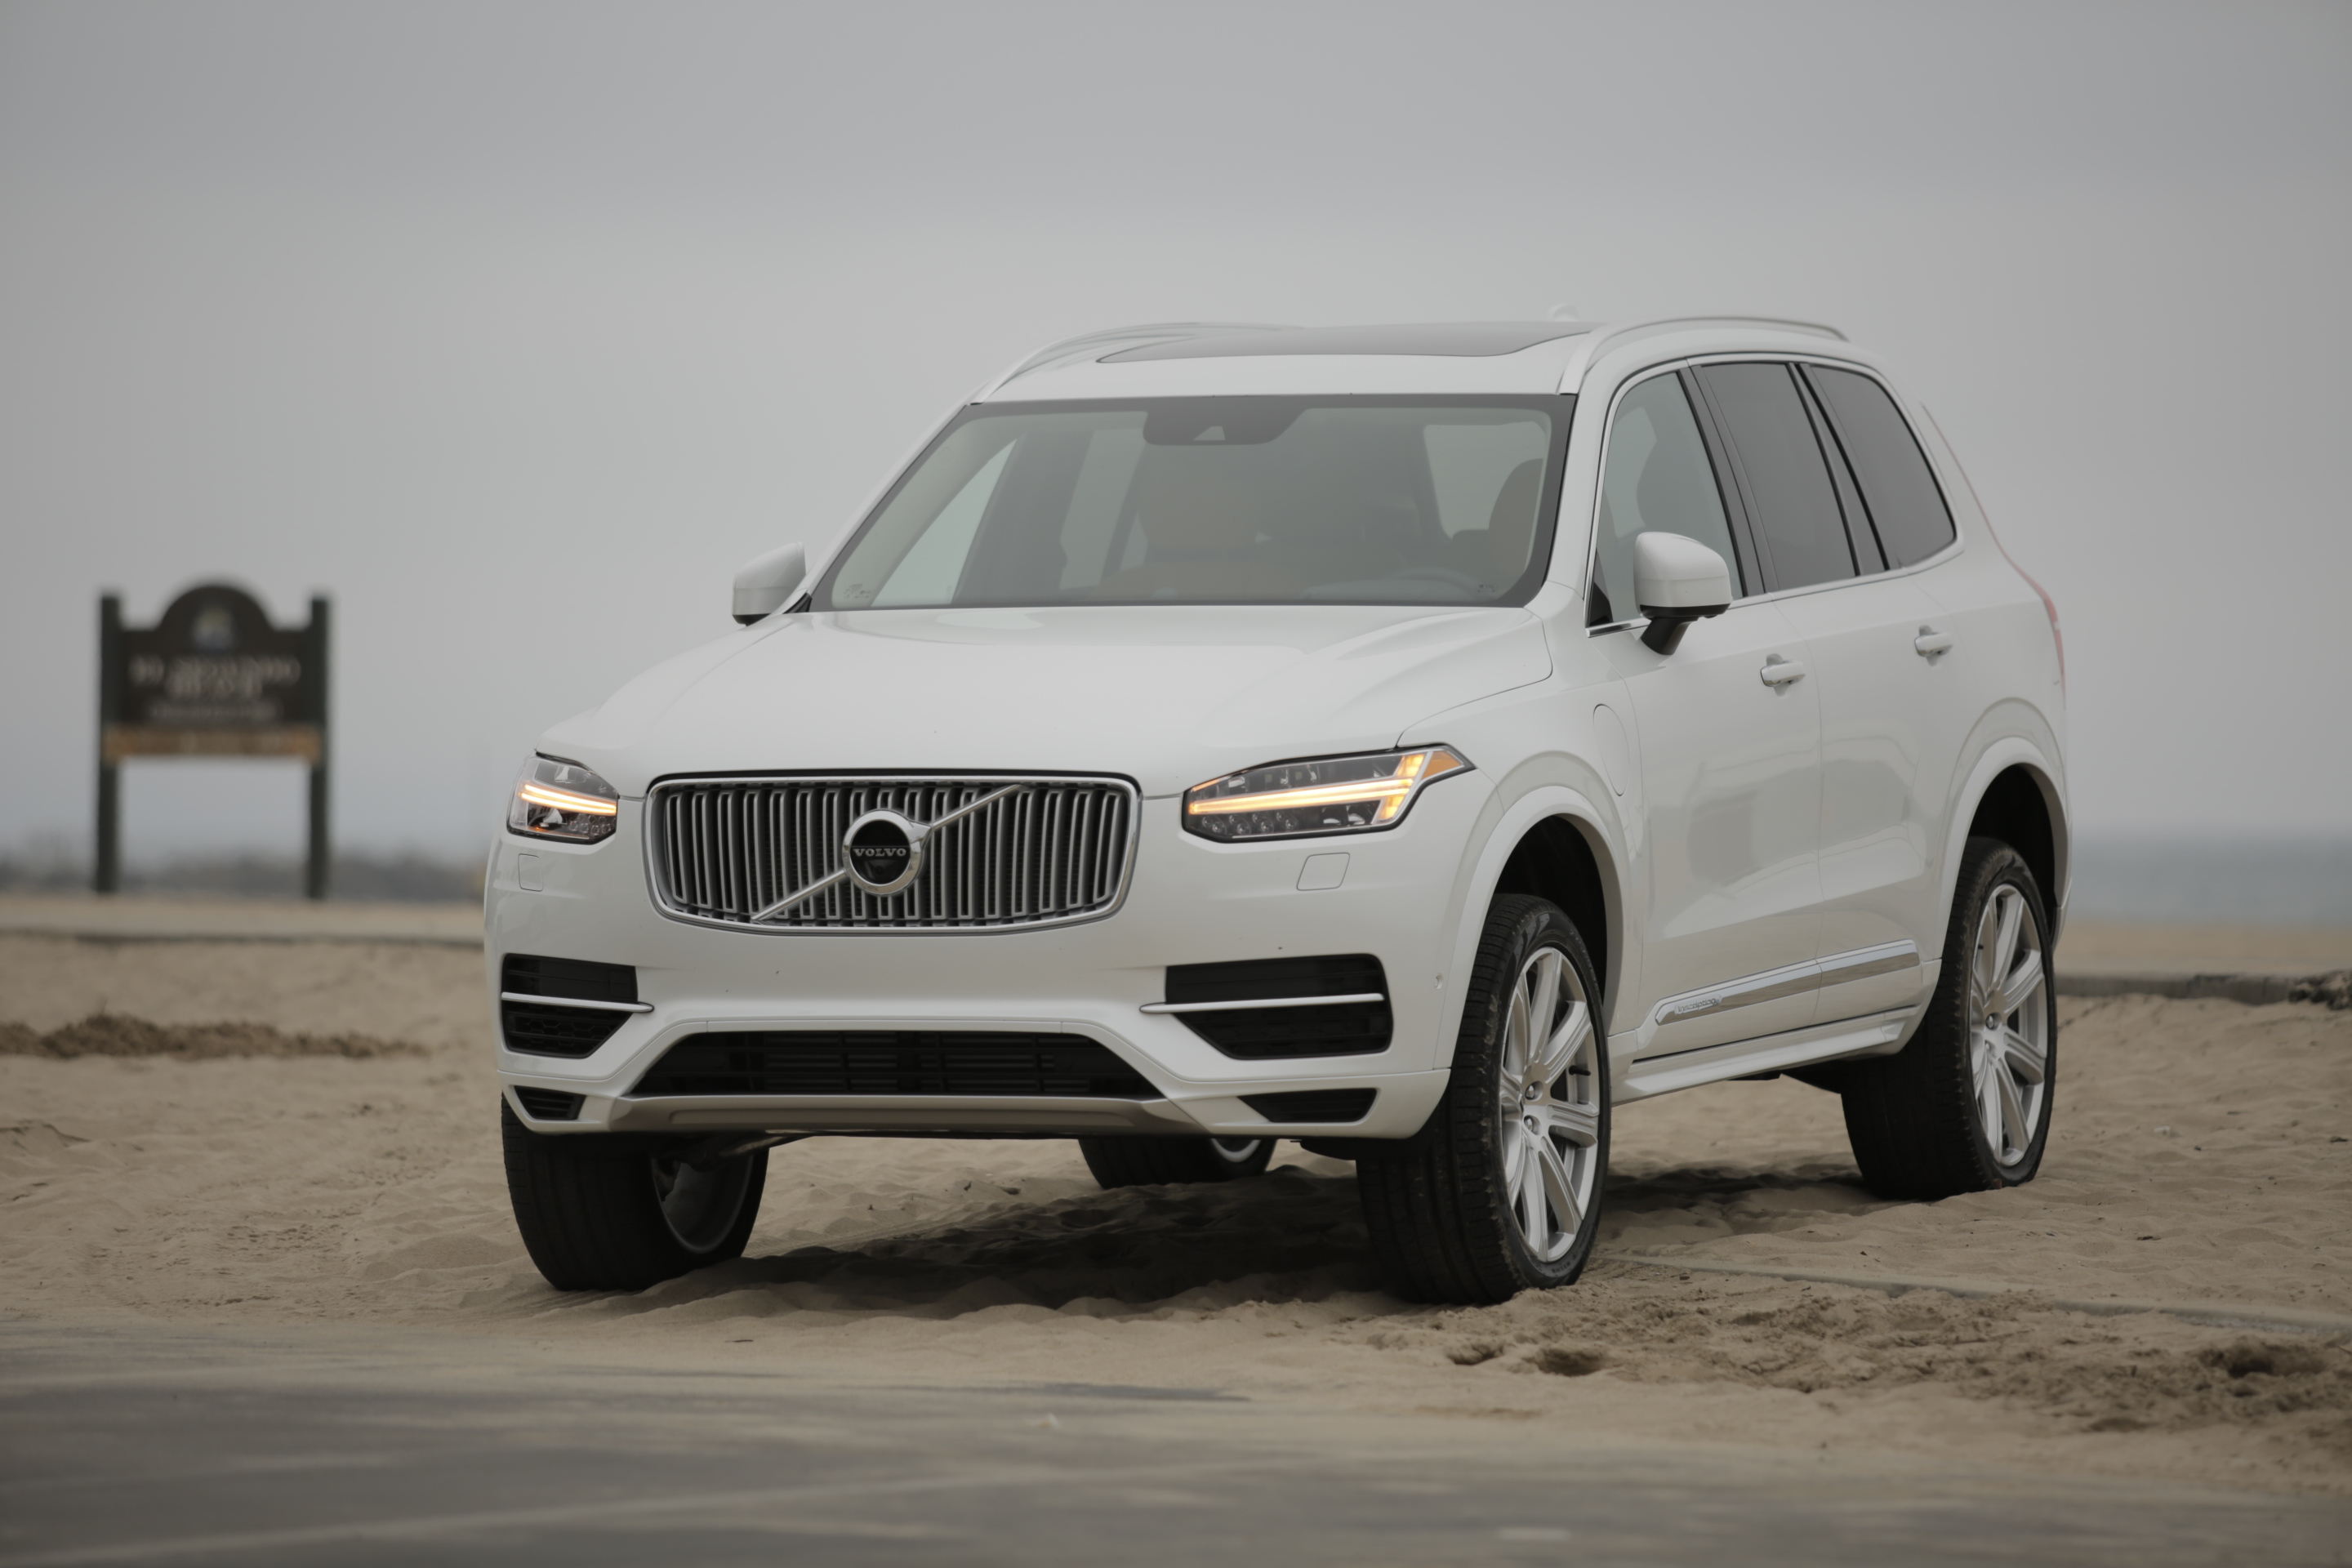 2016 volvo xc90 t8 meet the new volvo the ignition blog. Black Bedroom Furniture Sets. Home Design Ideas